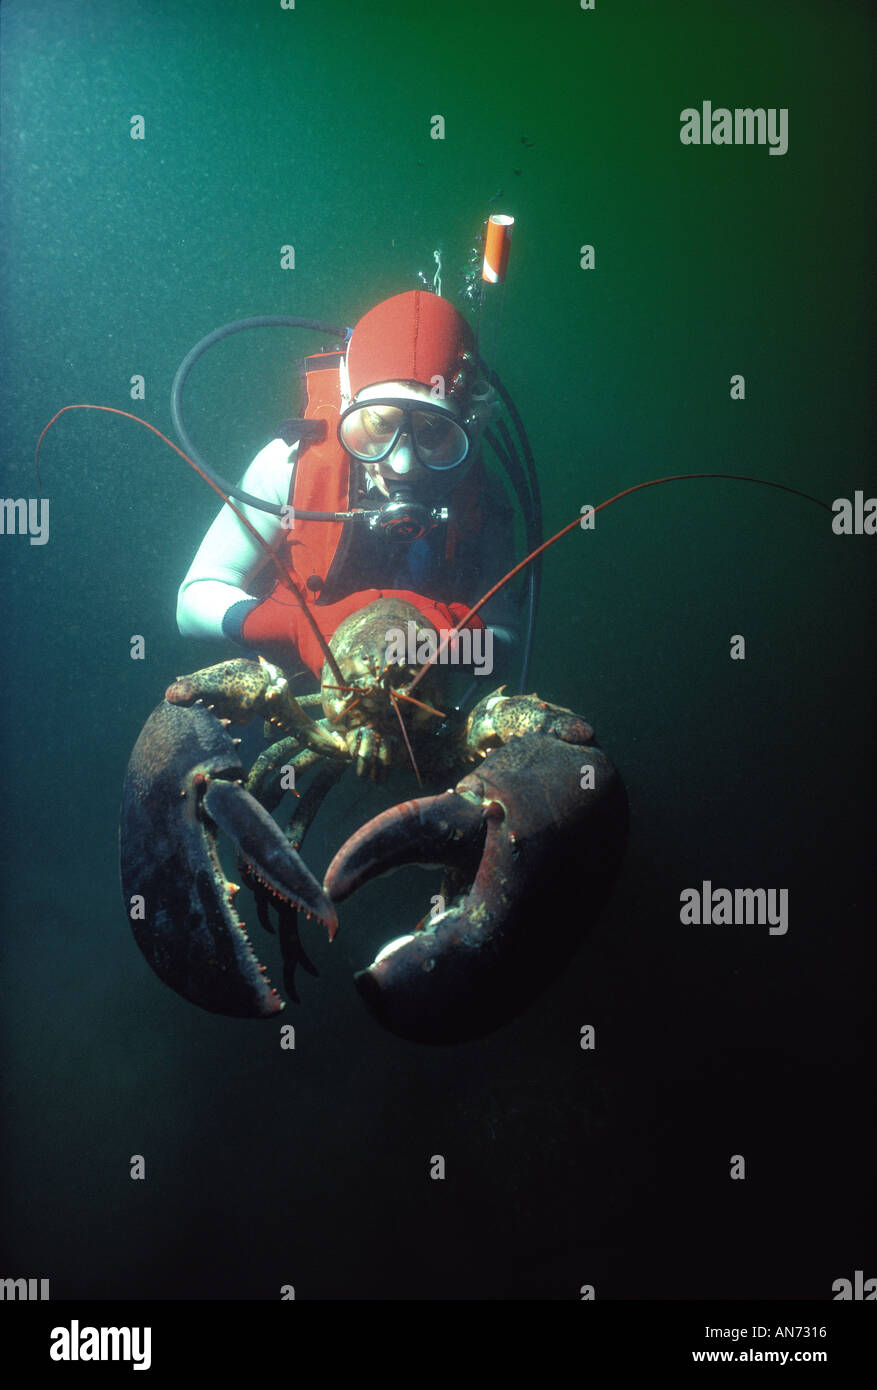 Diver holds 20 kilo Northern American Lobste - Stock Image